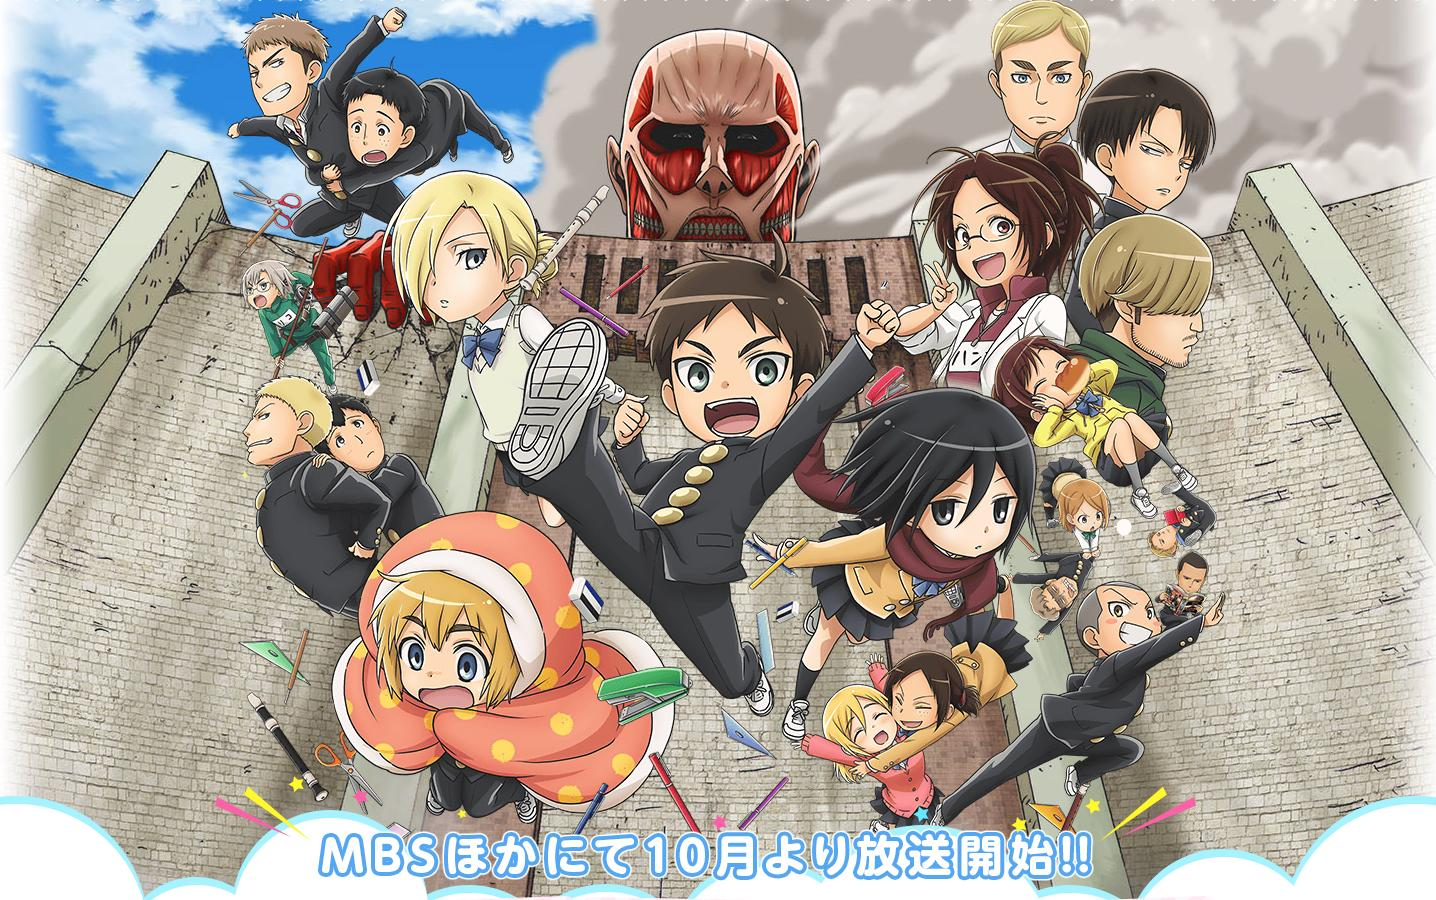 Bande-anonnce pour Attack on Titan: Junior High et Seraph of the End